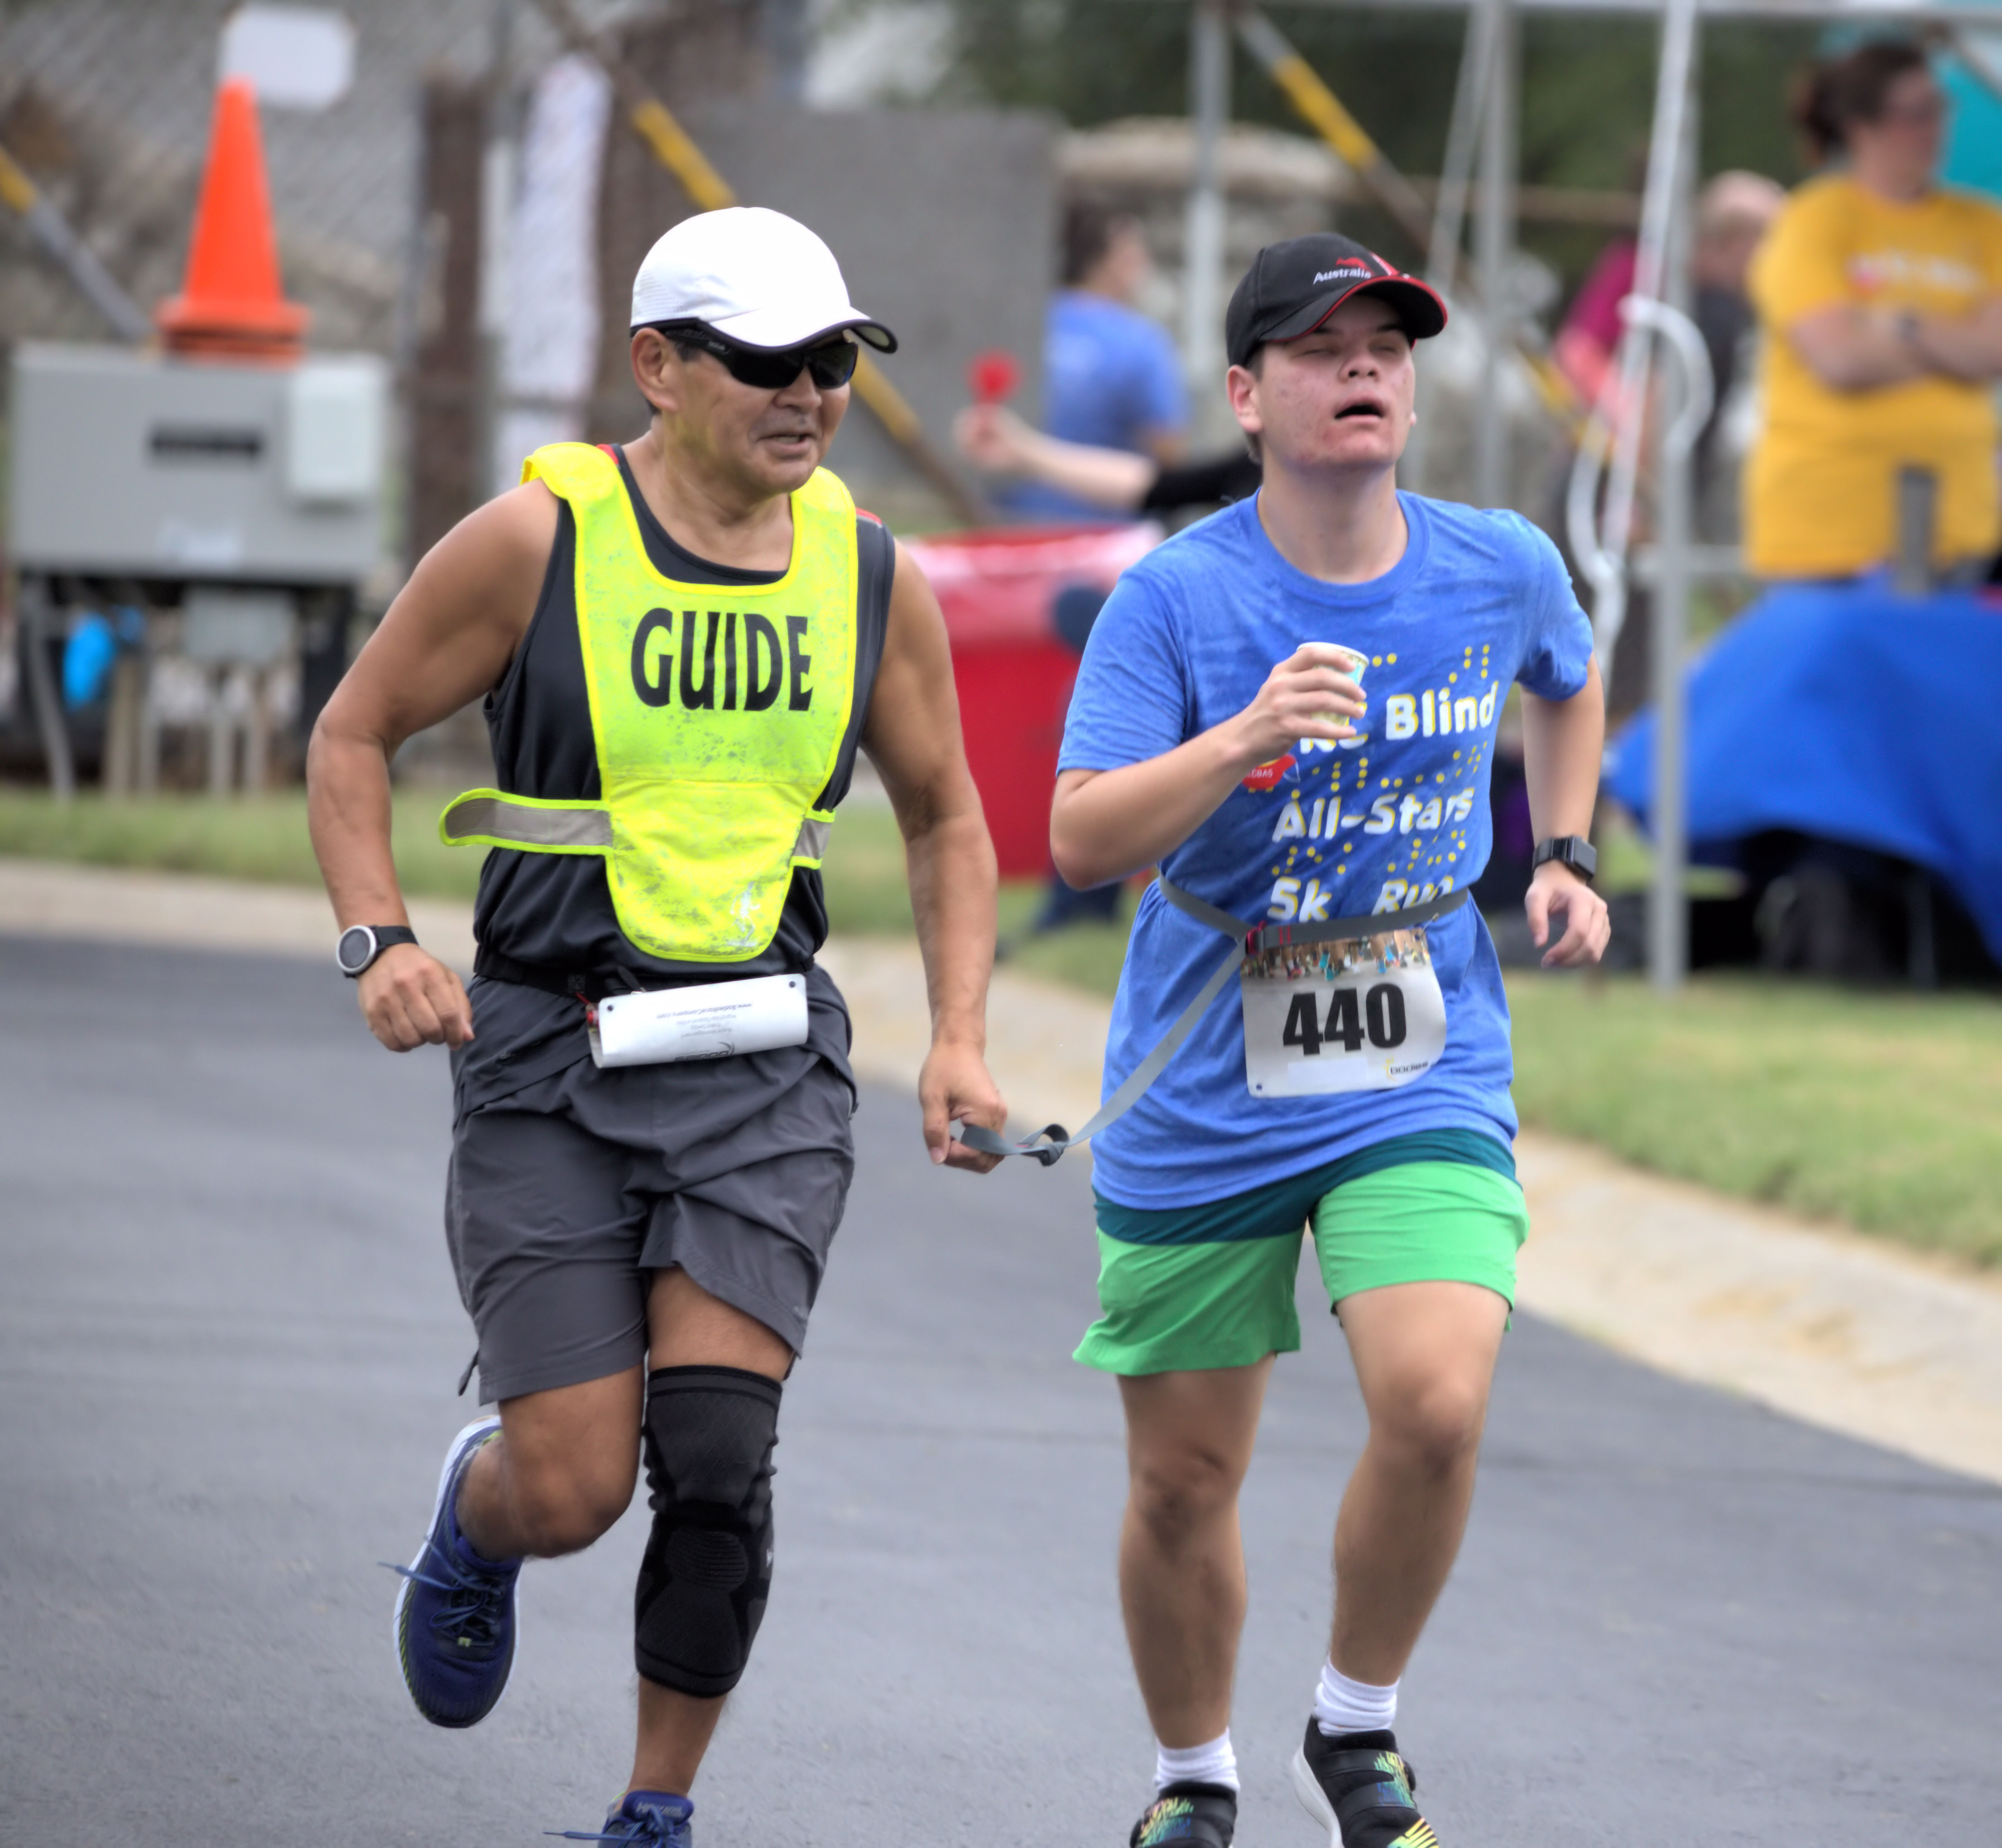 A student and guide runner at the finish line.